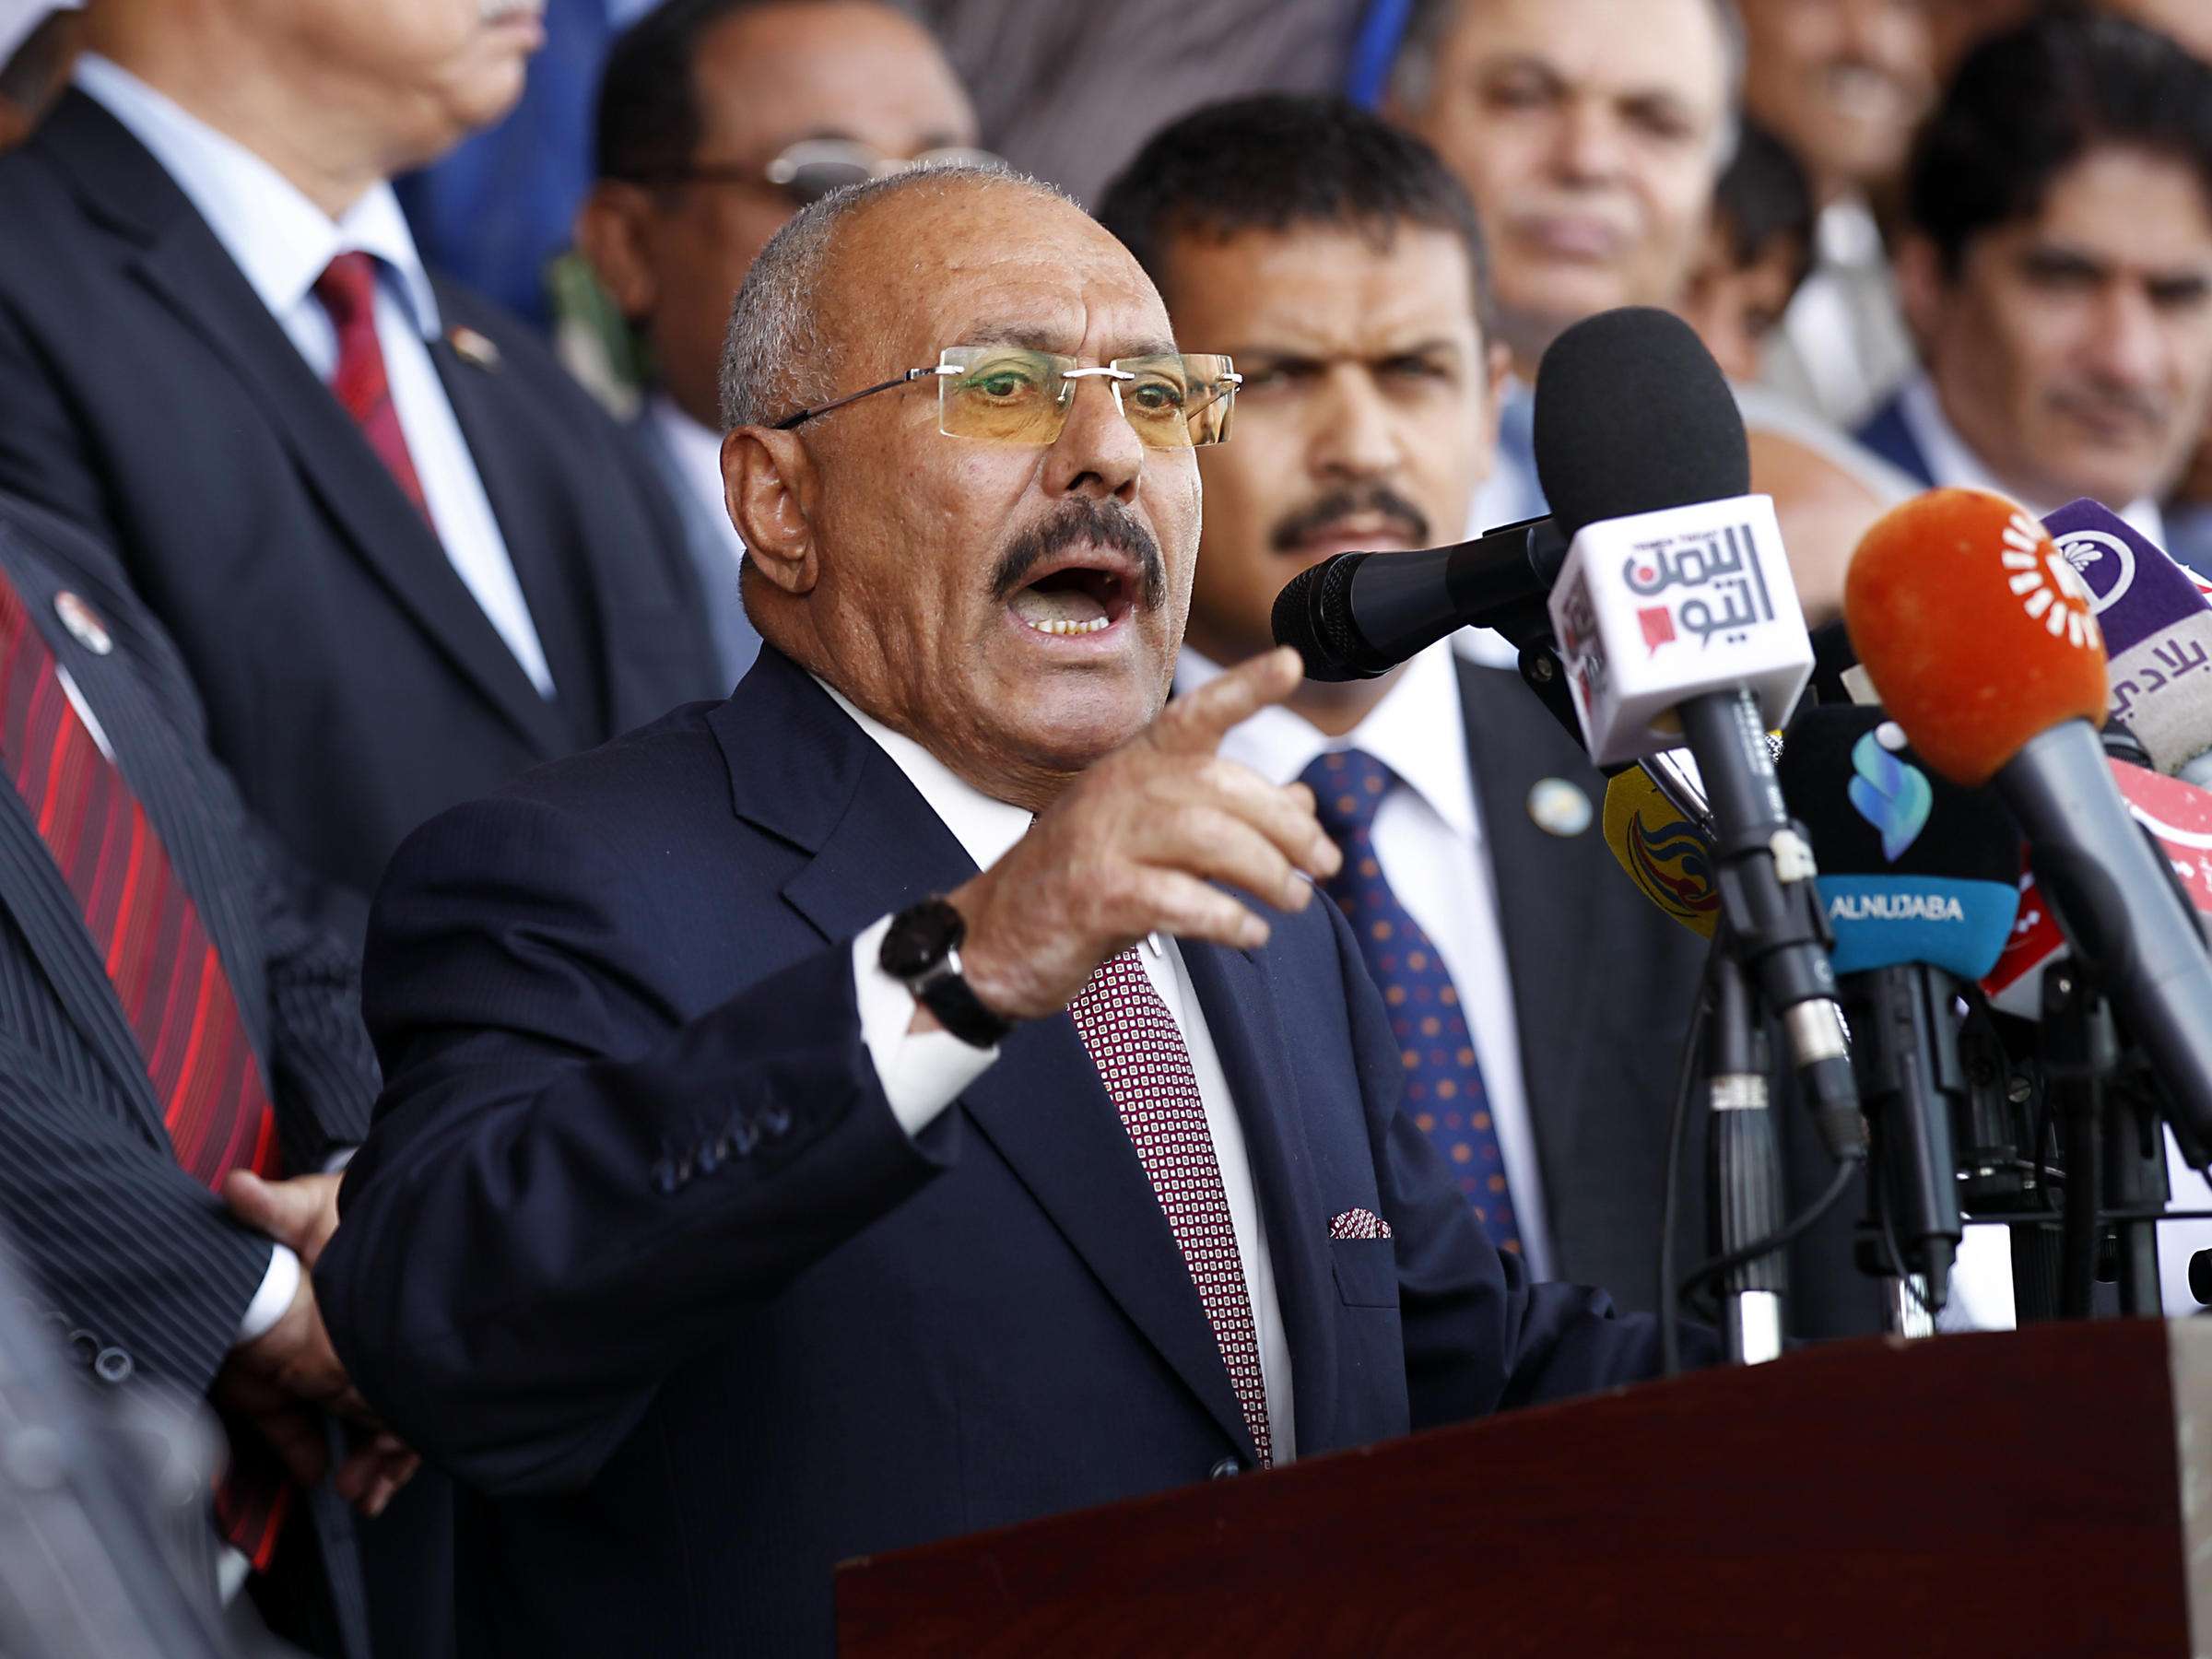 Ex-president of Yemen killed by rebels